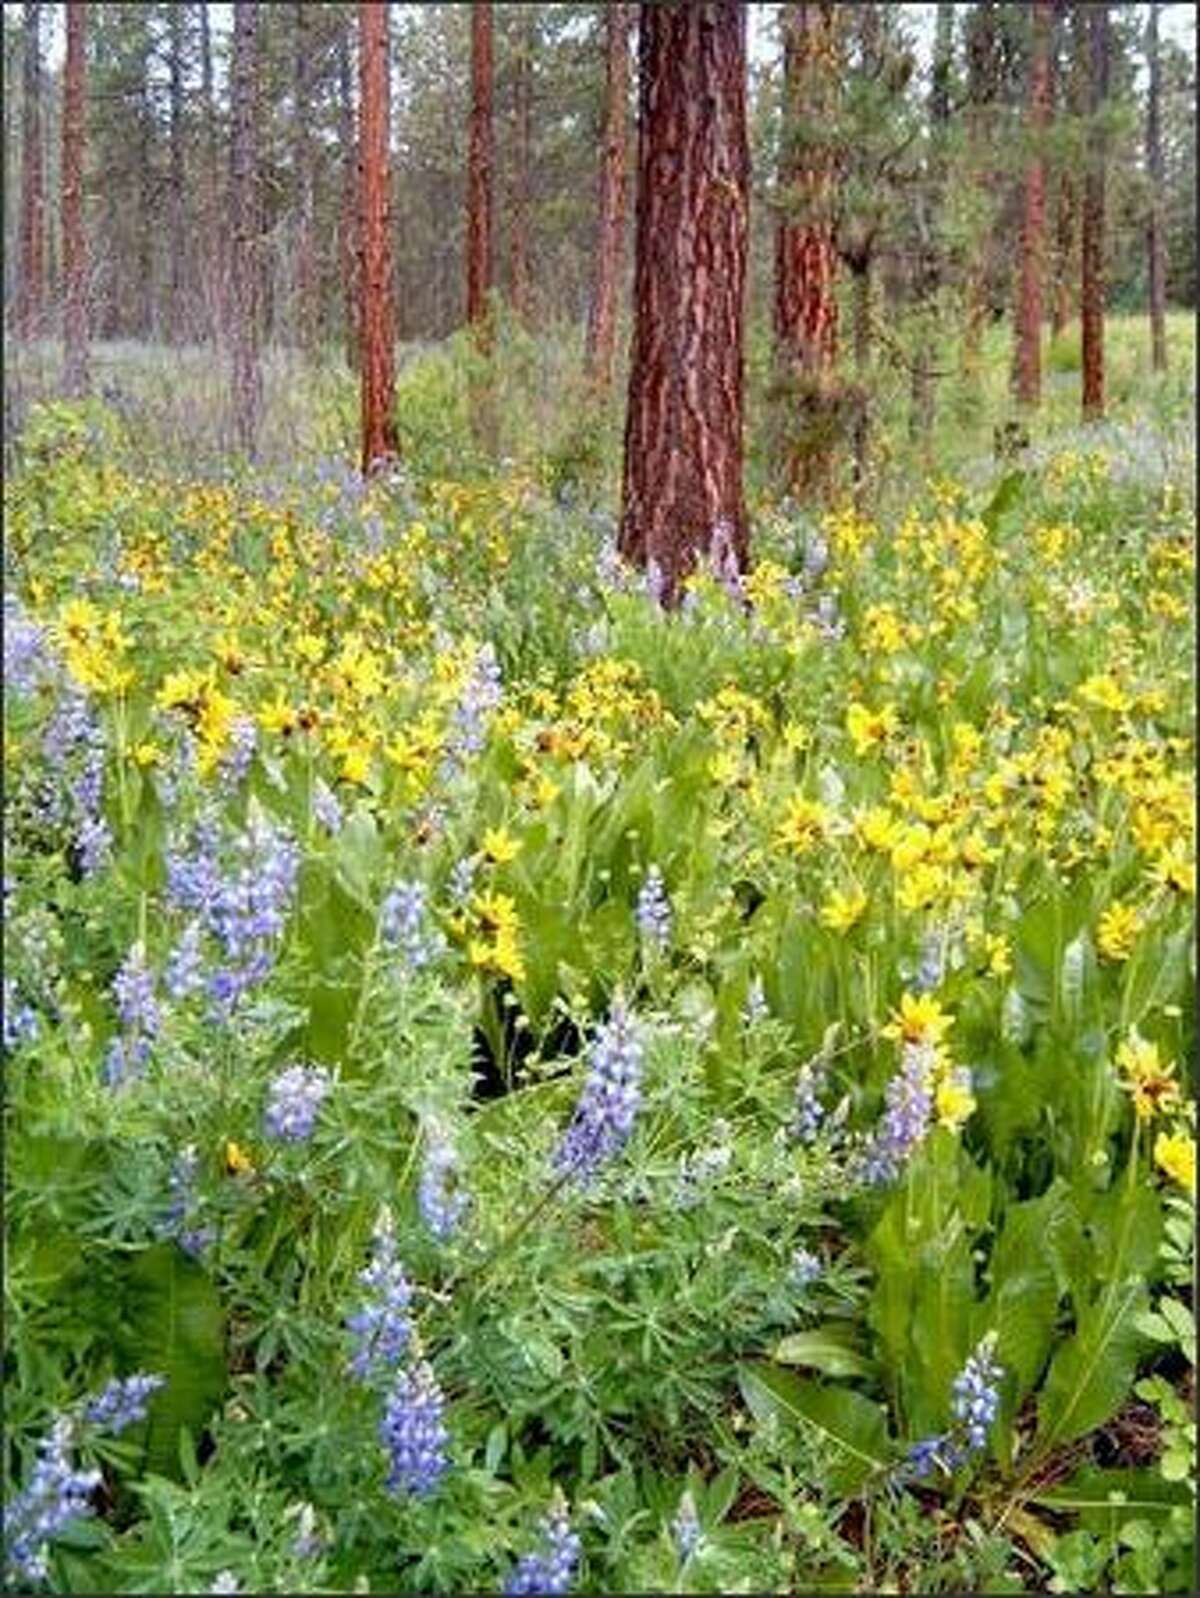 Lupine and balsamroot displays can be found along the Ski Hill Road in Leavenworth.